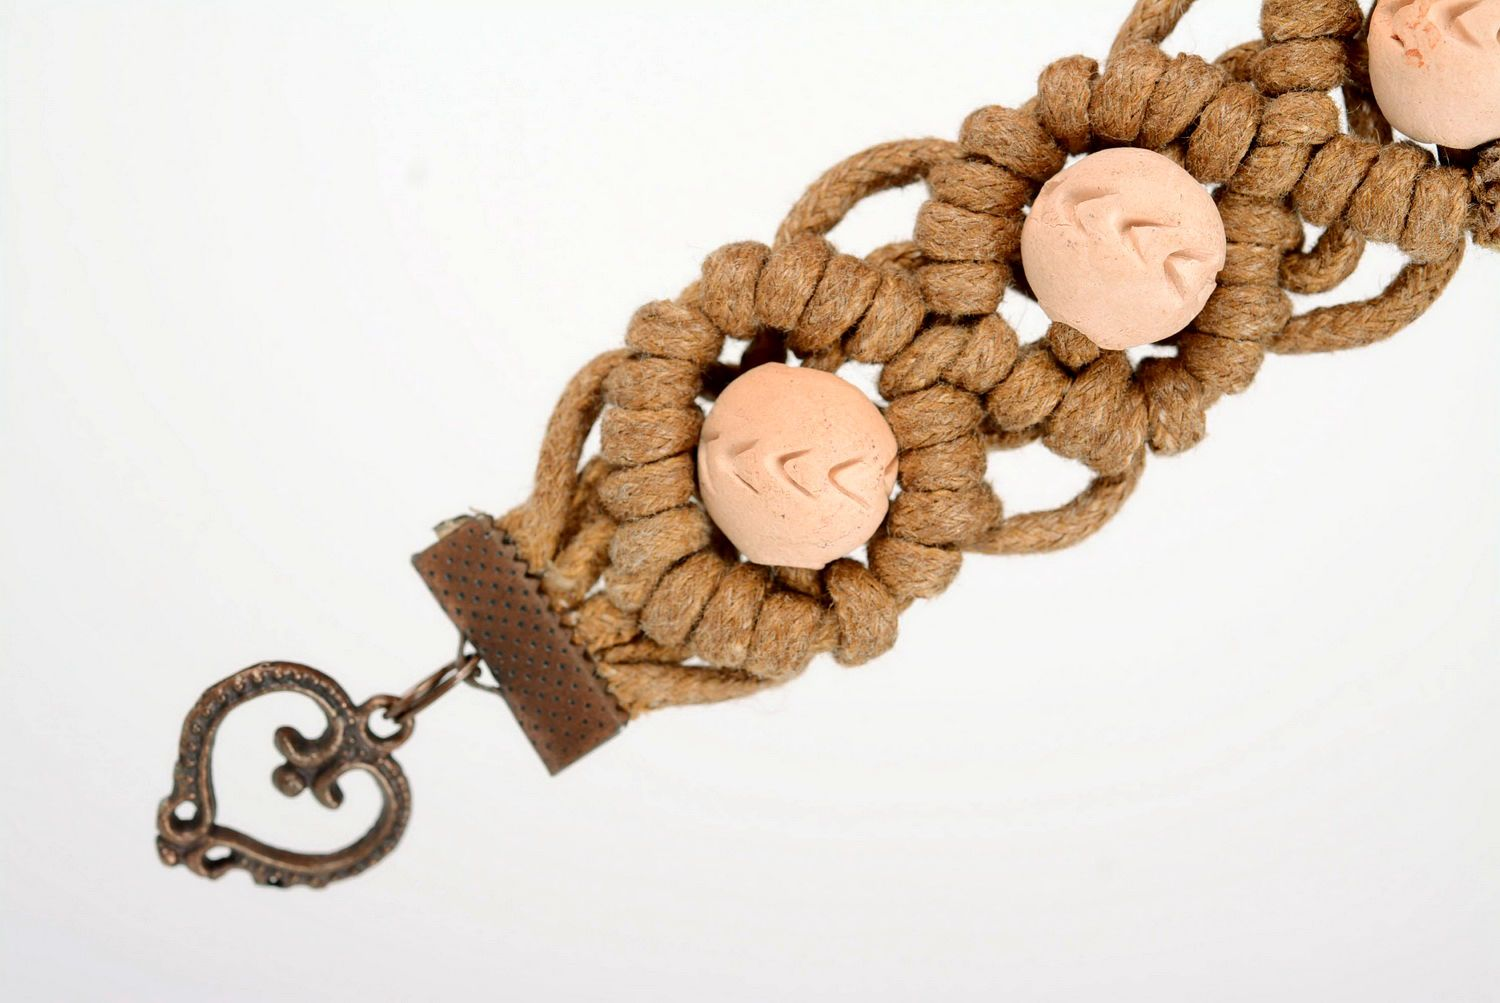 clay bracelets Braided bracelet, ceramics, cotton thread - MADEheart.com